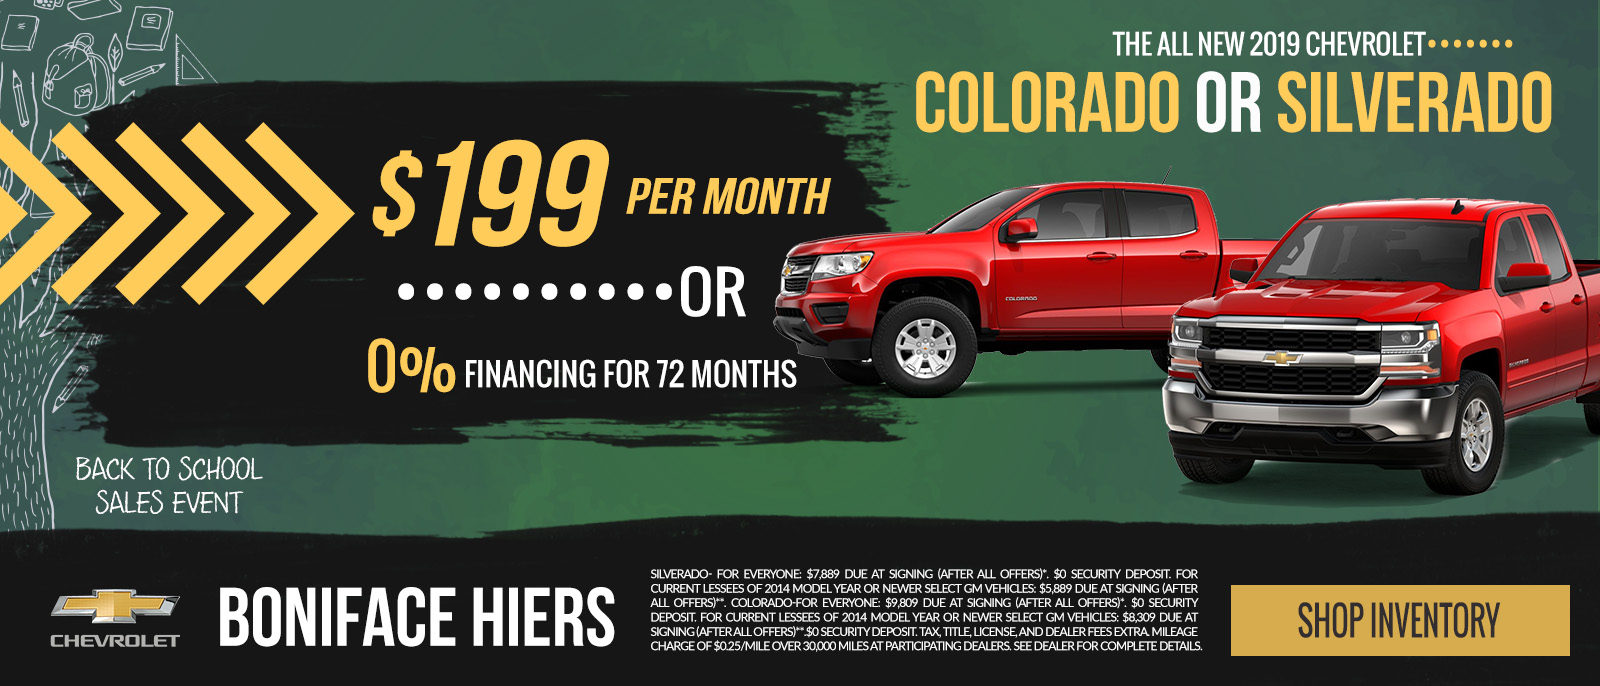 The All-New 2019 Chevy Silverado or Colorado $199 per month or 0% financing for up to 72 months. See Dealer For Full Details.